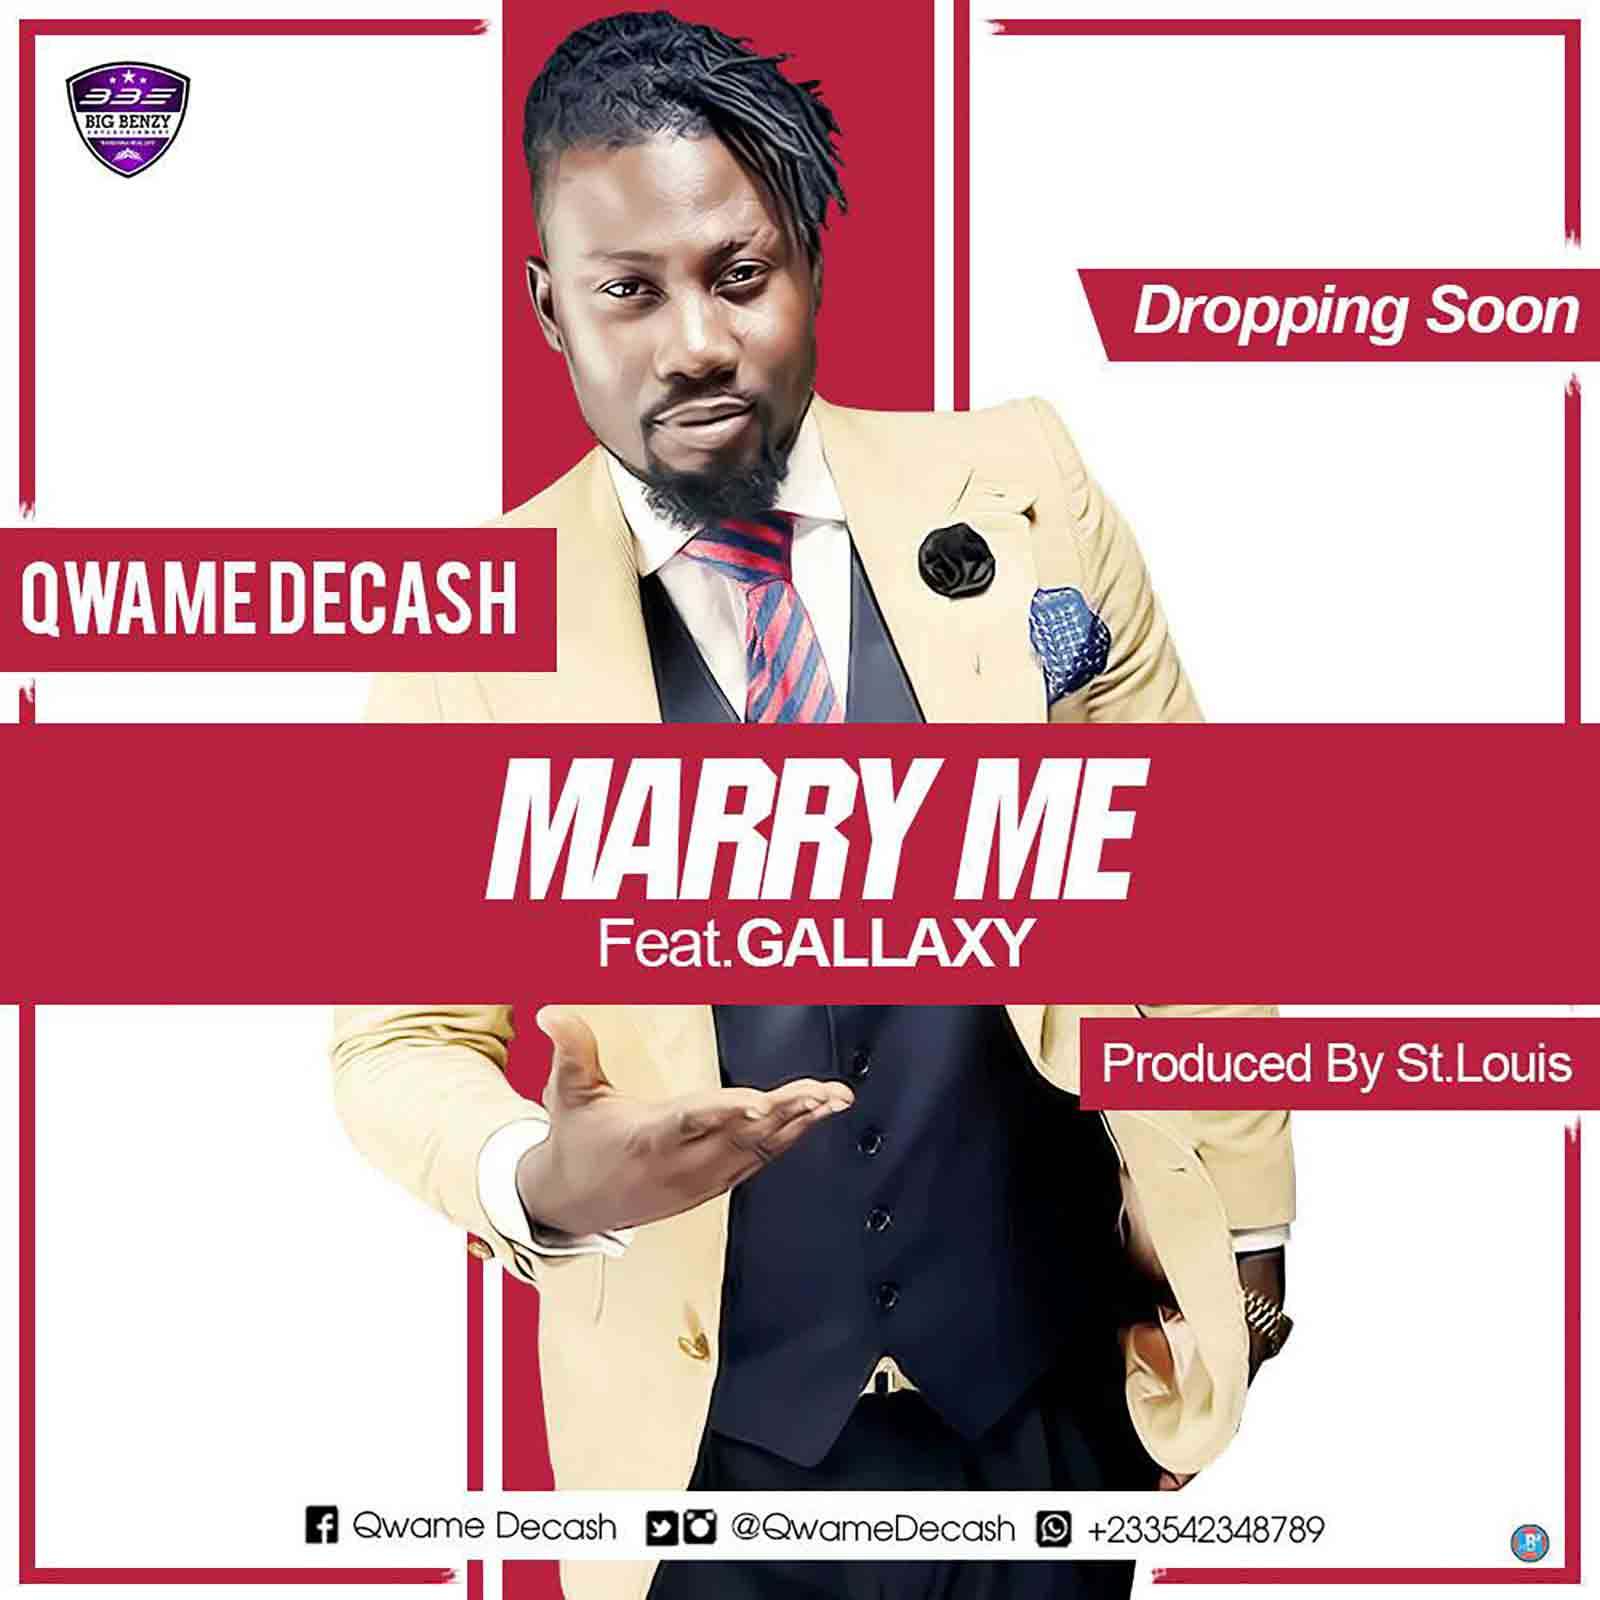 Marry Me by Qwame Decash ft. Gallaxy